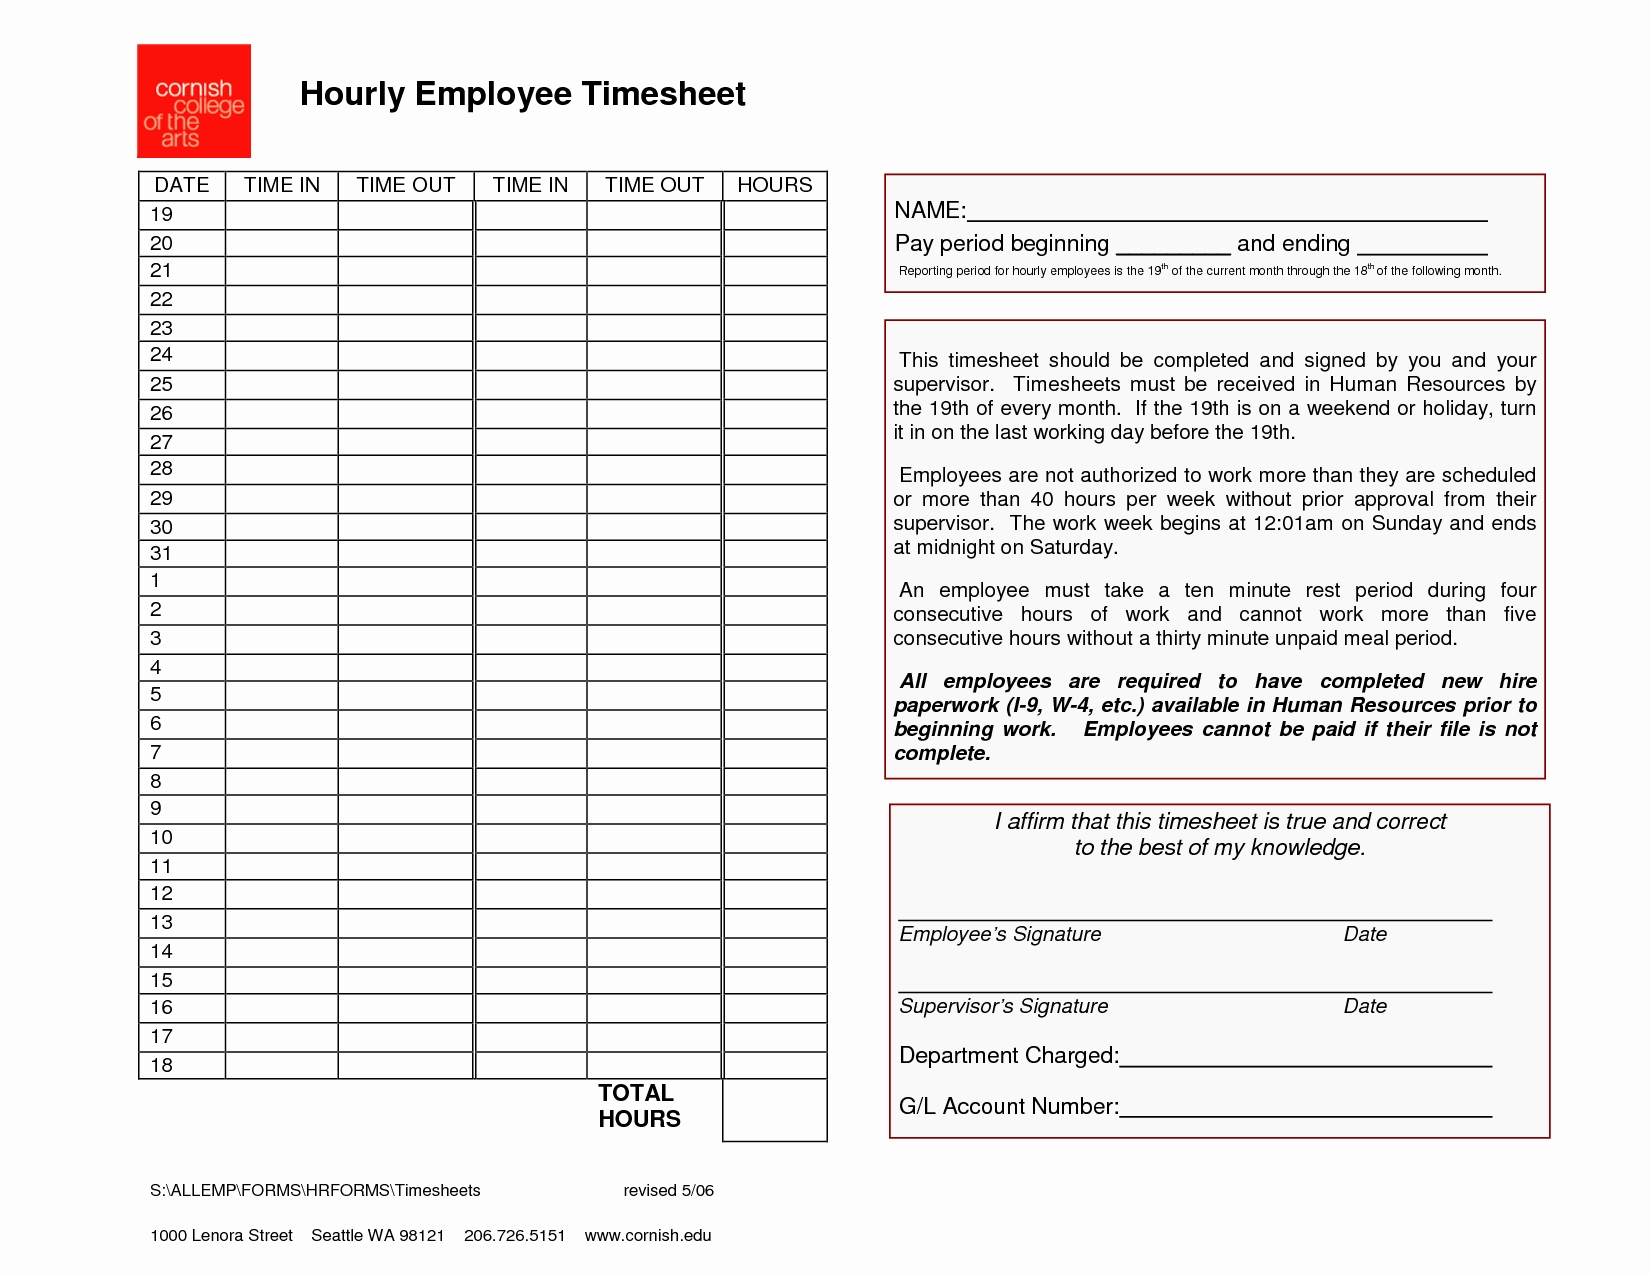 Payroll Time Sheets Free Classified Awesome Daily Timesheet Template With Payroll Weekly Timesheet Template